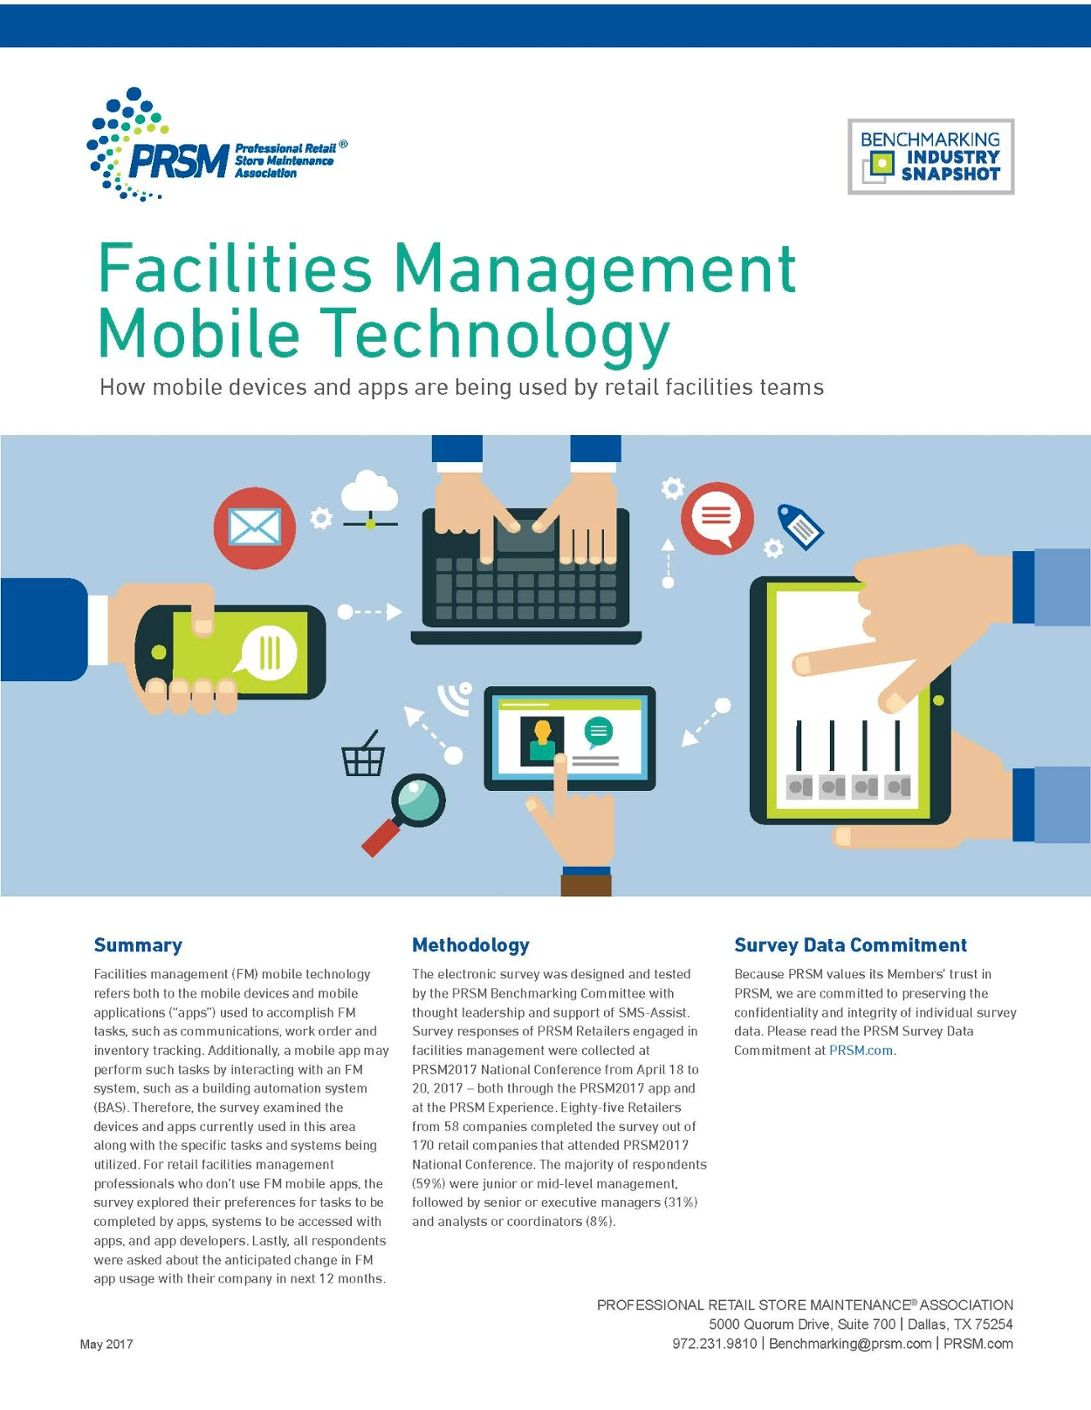 Facilities Management Mobile Technology Snapshot_Front.jpg